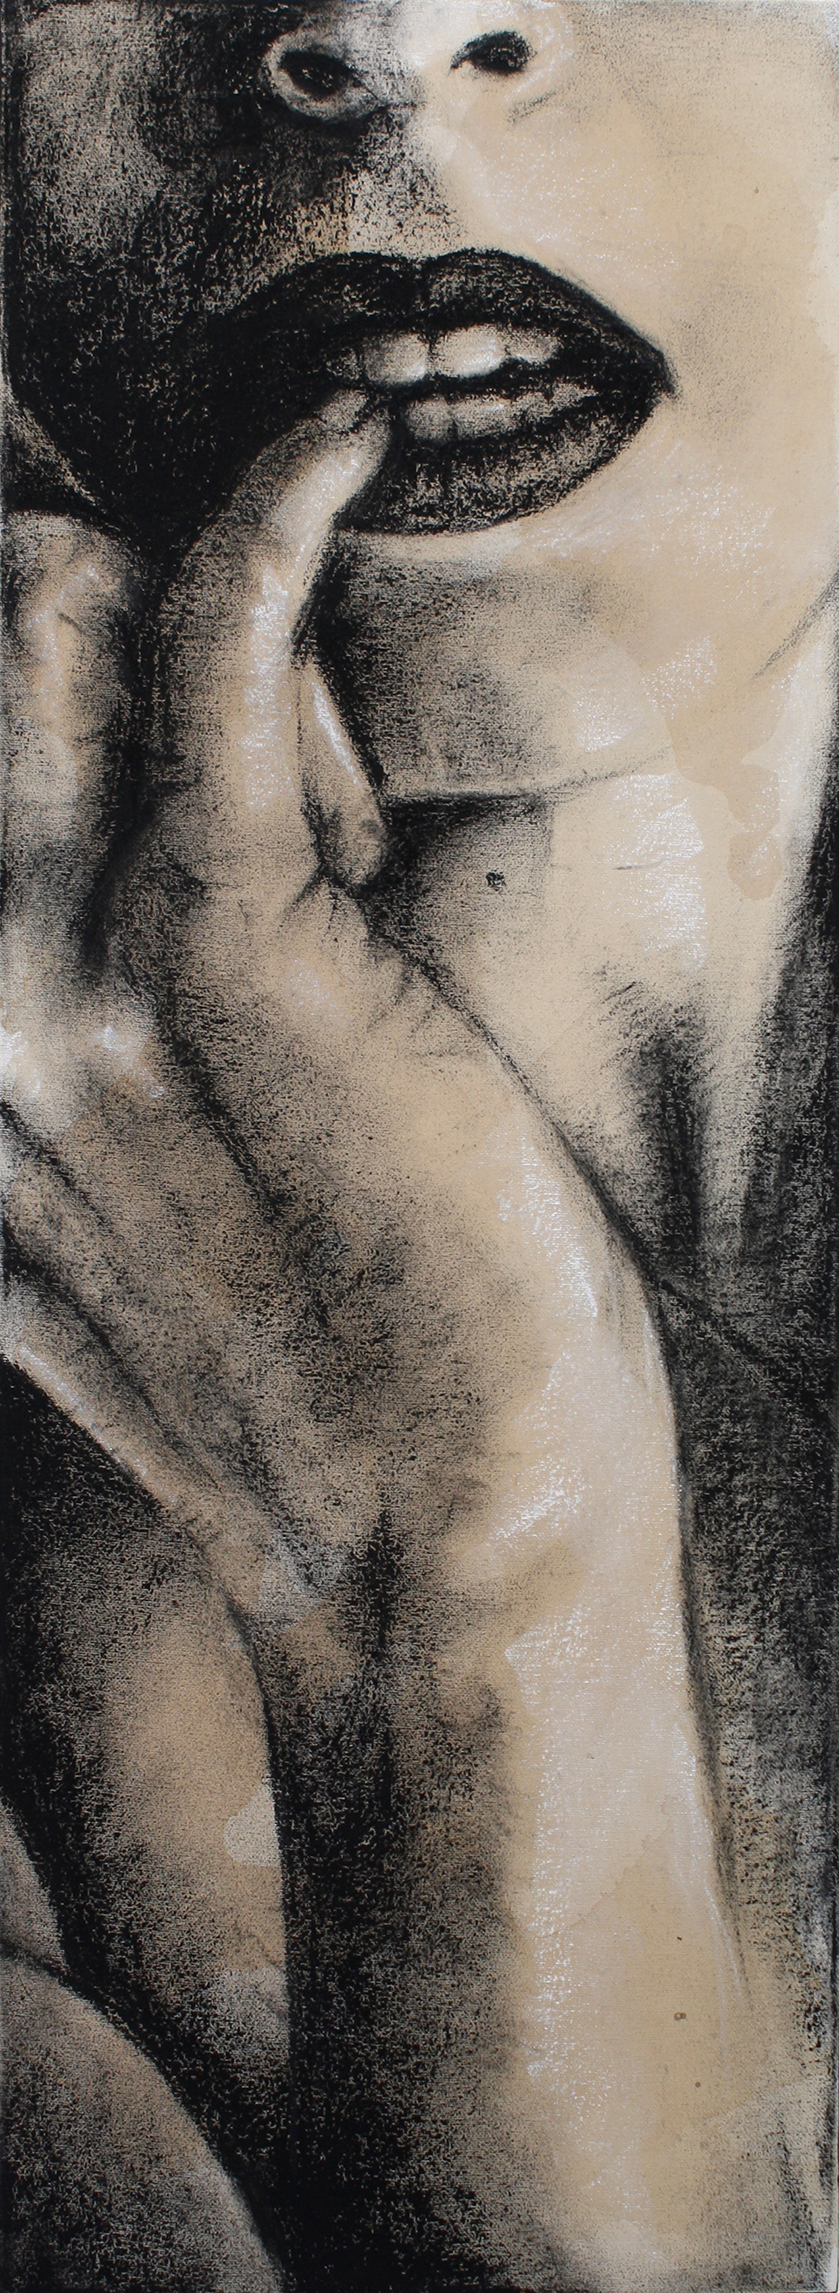 Sexting IMG.201402.003  Charcoal & Tea on Canvas ©2015 The Femme Project